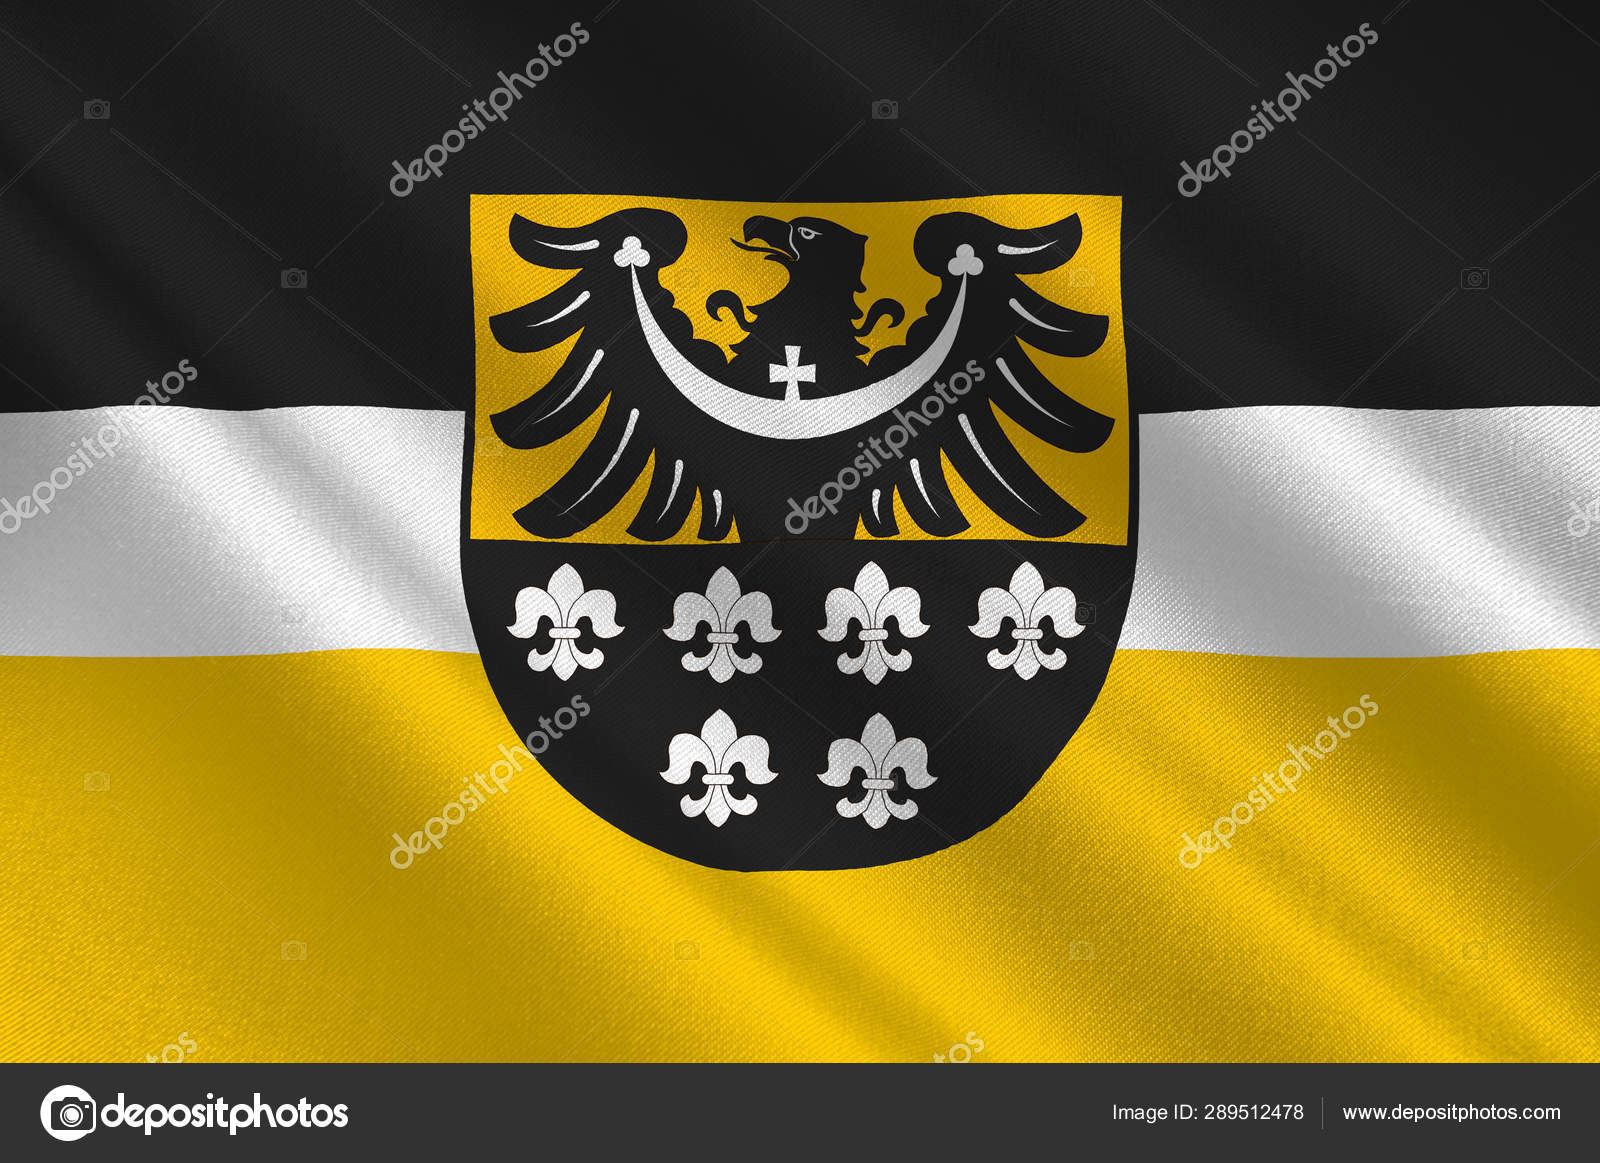 Voivodato Della Slesia Polonia flag of trzebnica county in lower silesian voivodeship of